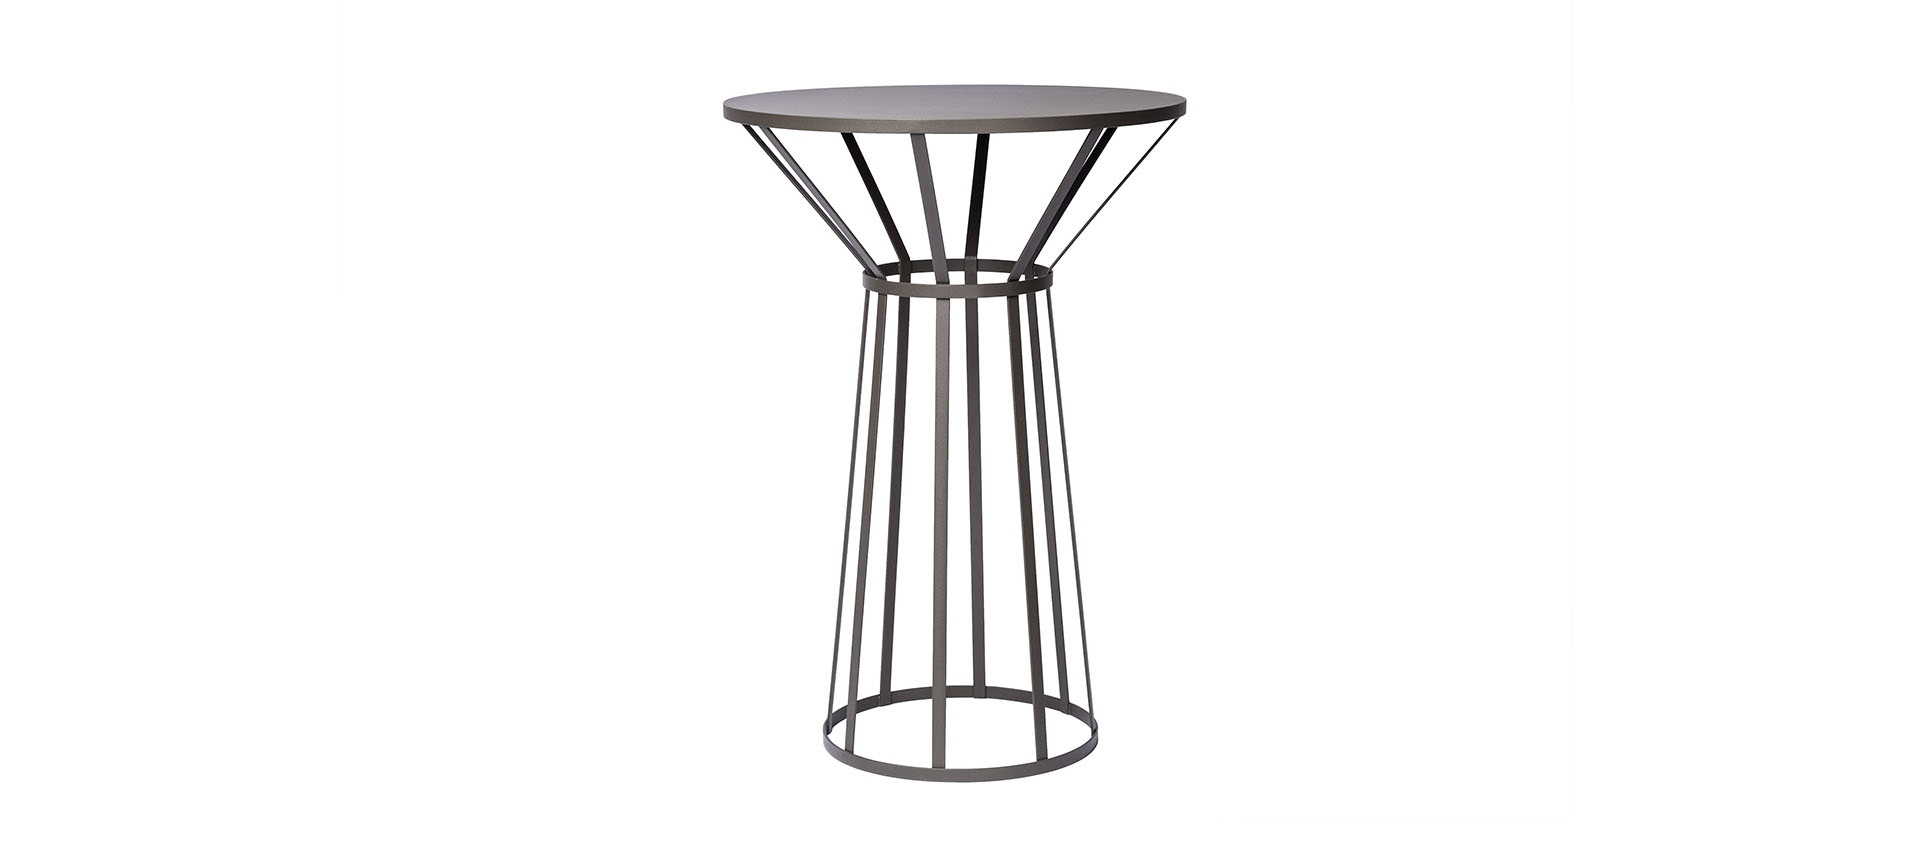 Petite Table Bistrot Table Bistrot Hollo Petite Friture Blou